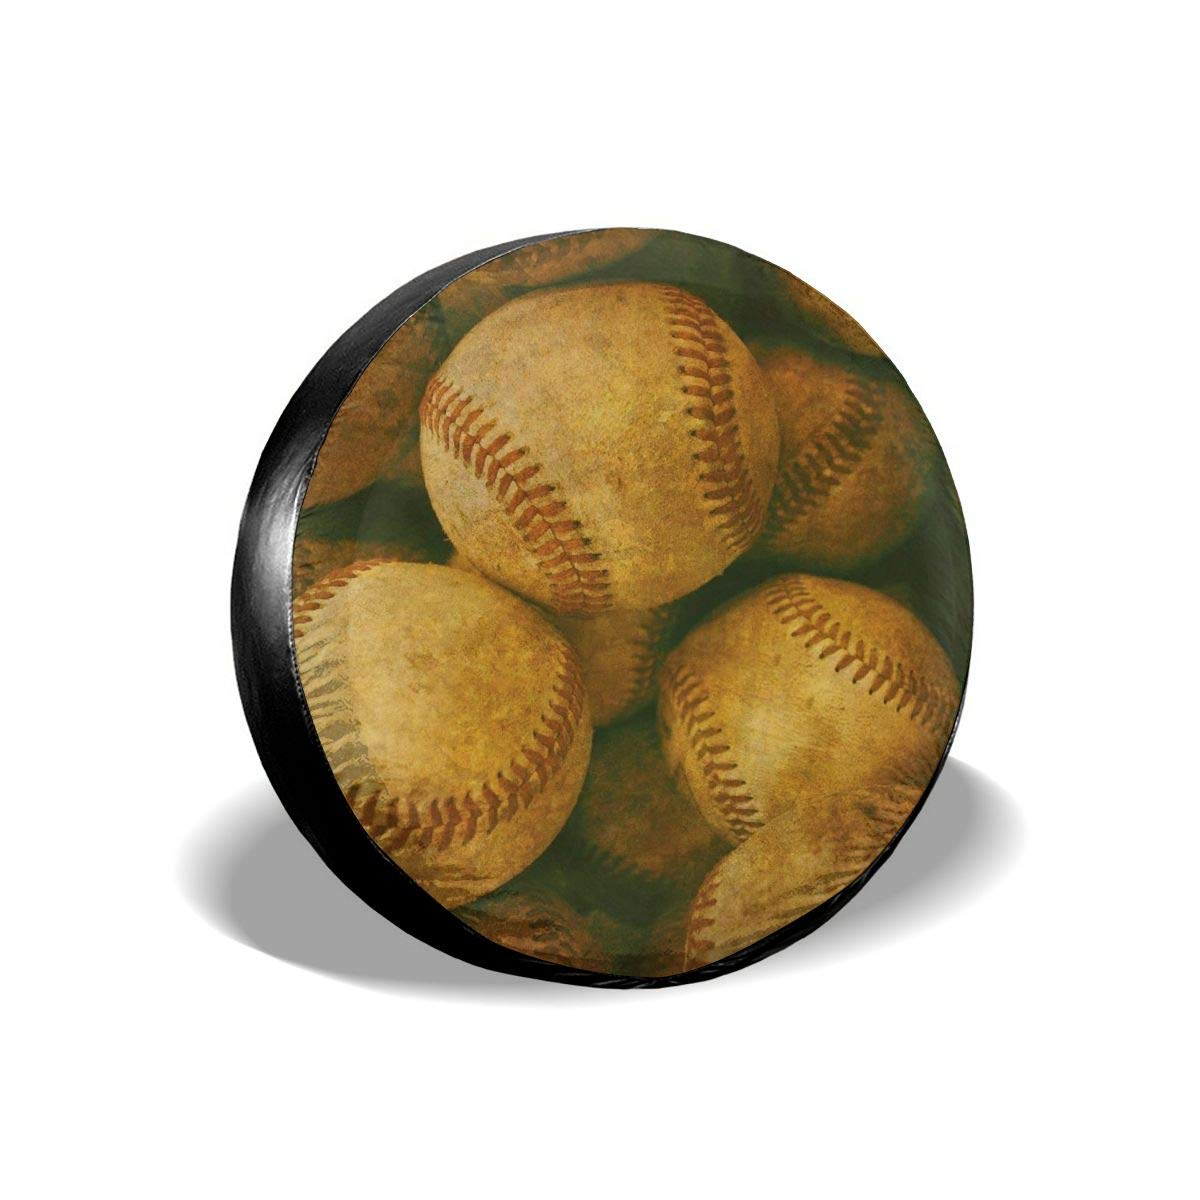 RV Gulong~a Vintage Baseball Nostalgic Leather Retro Balls Tire Cover Polyester Waterproof Dust-Proof Universal Spare Wheel Tire Cover Fit for Jeep SUV and Many Vehicle Trailer